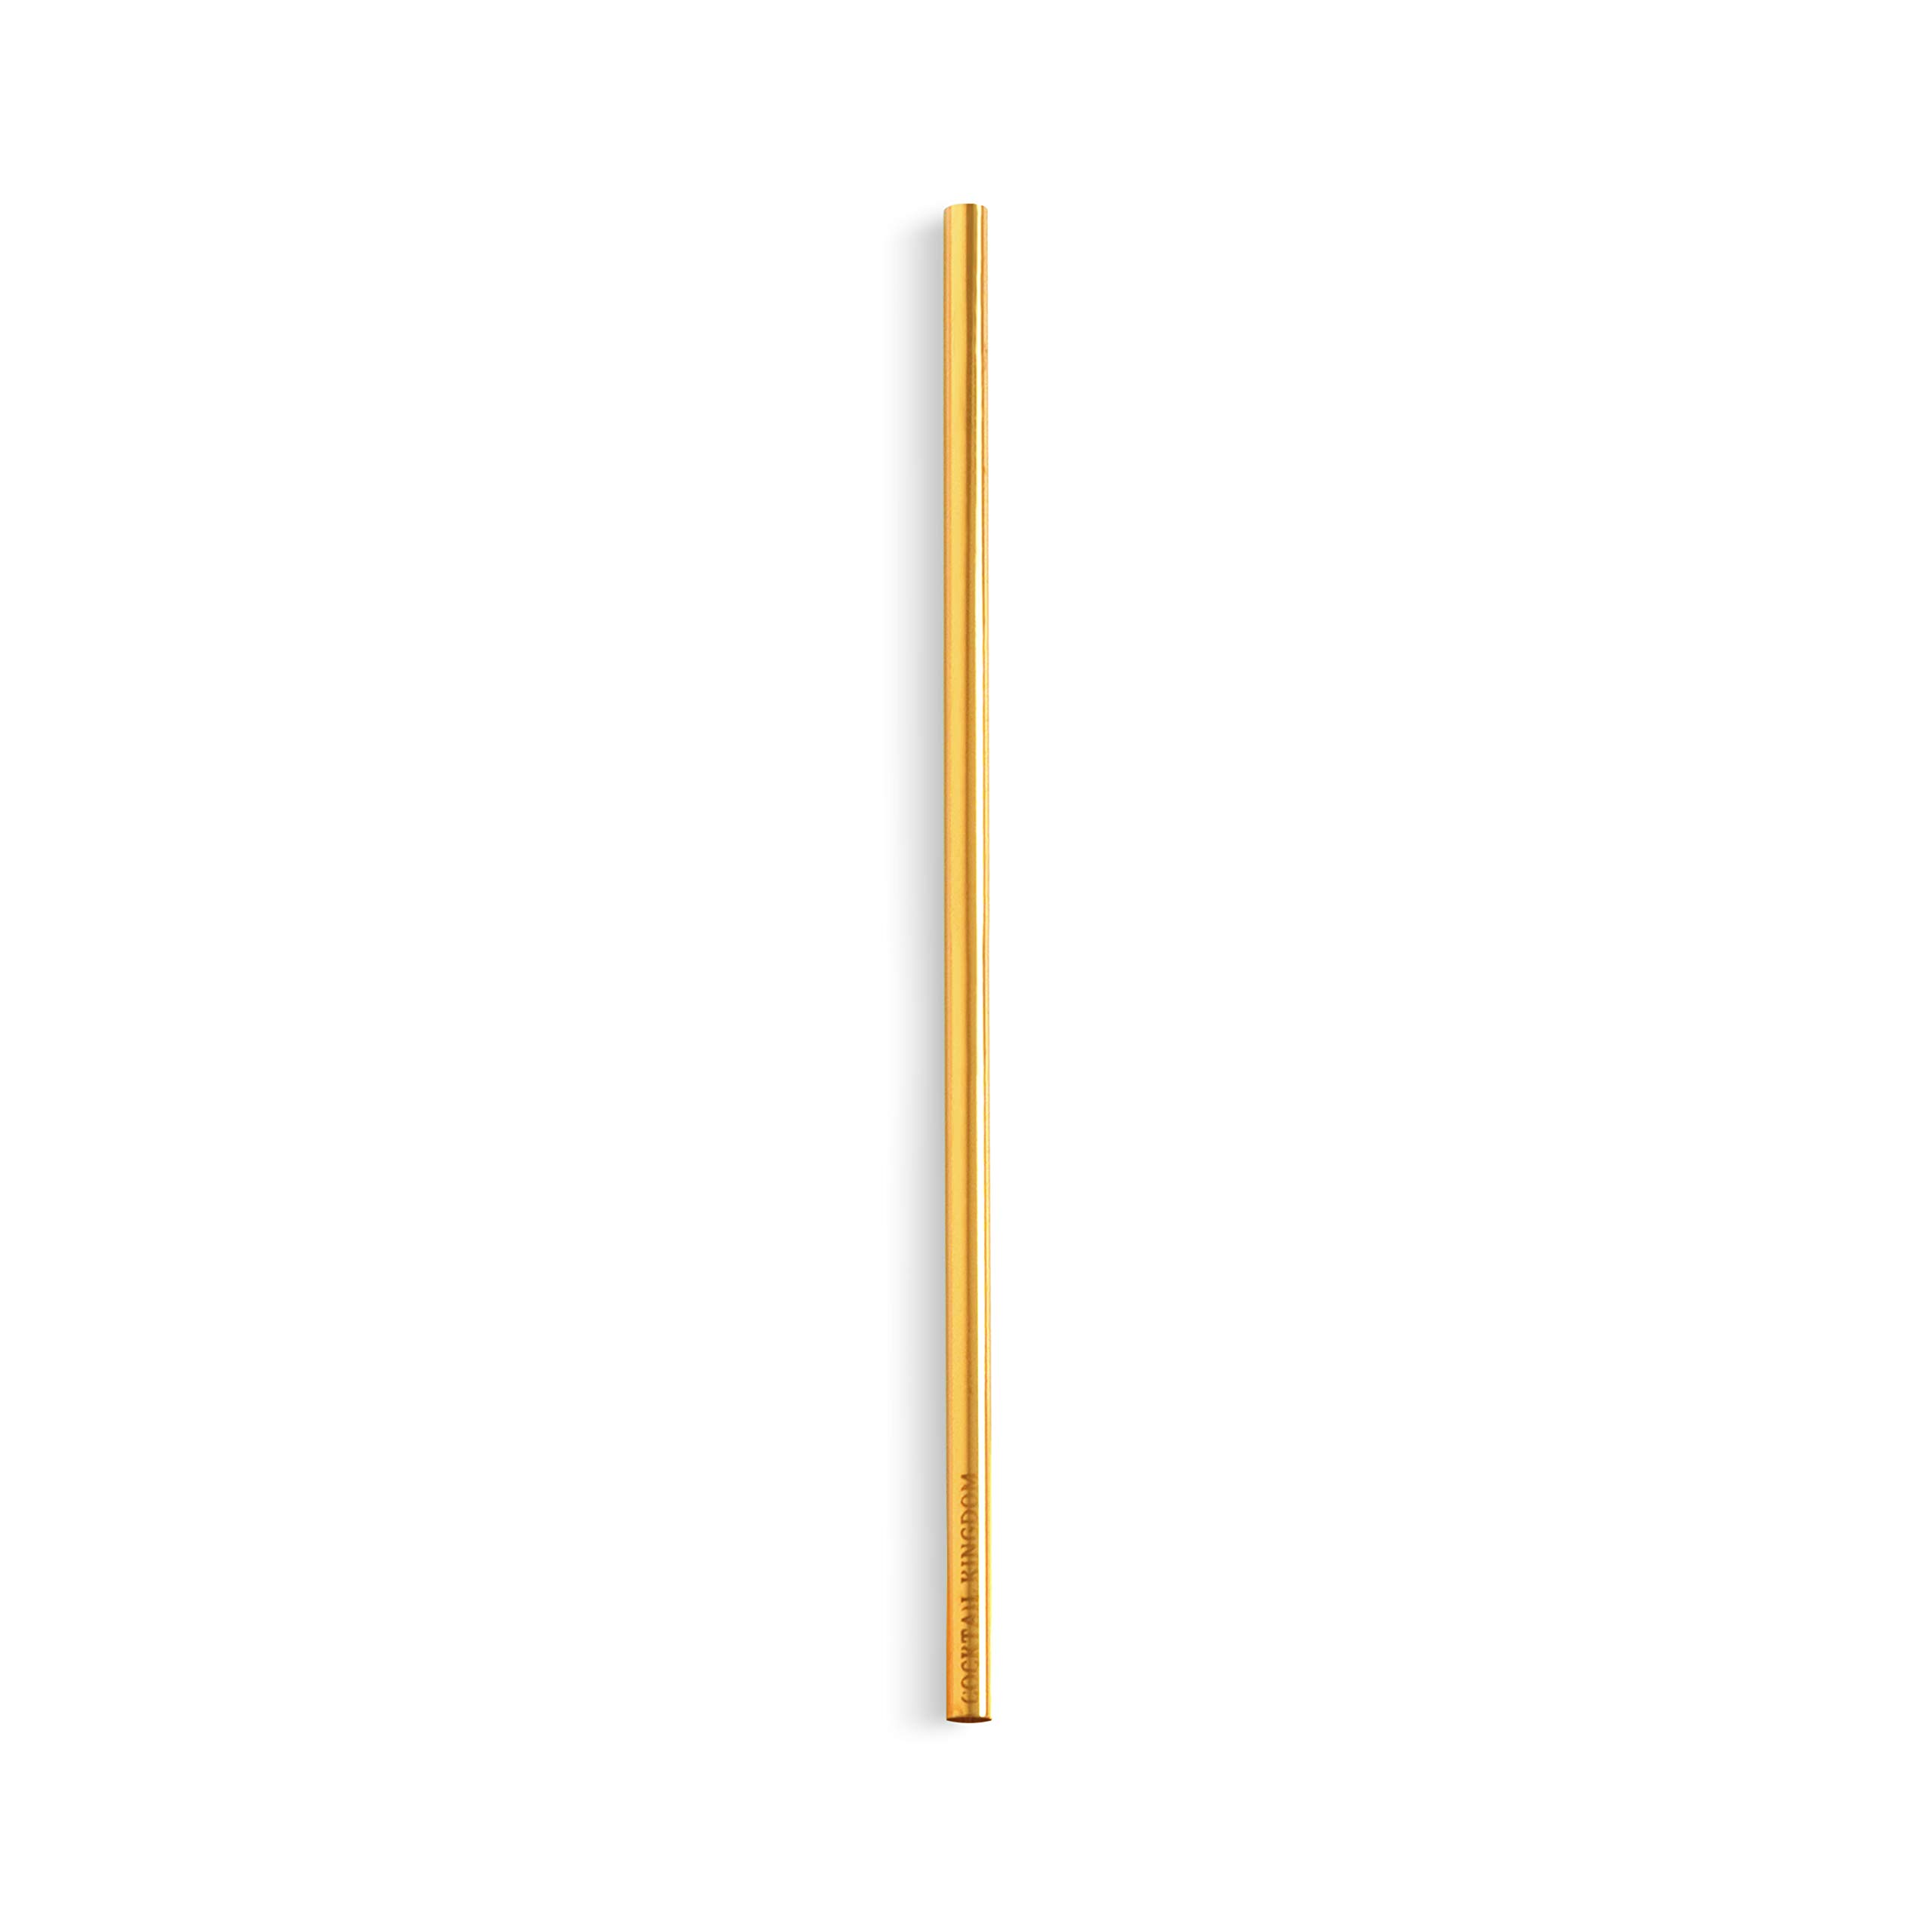 Cocktail Kingdom Steel Straw - Gold-Plated - 7.5in - Pack of 24 by Cocktail Kingdom